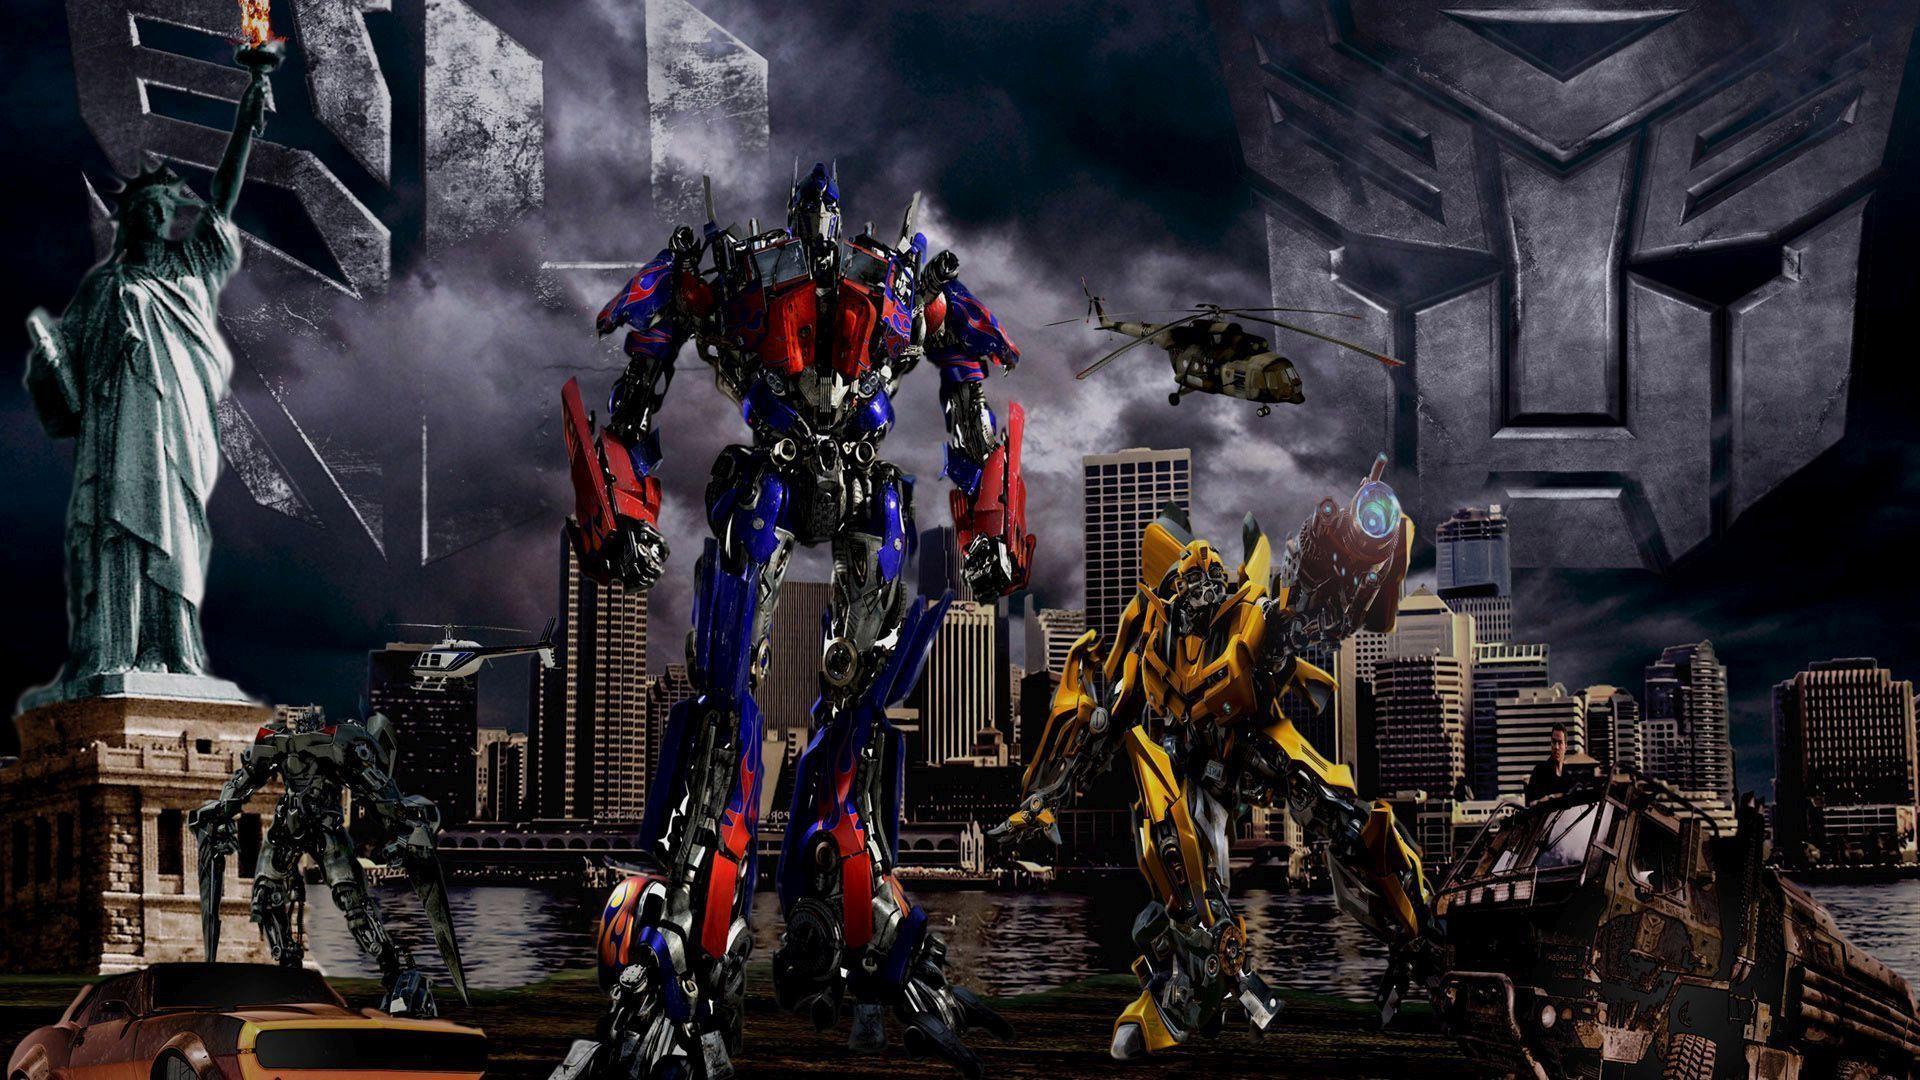 transformers hd wallpapers for windows 7